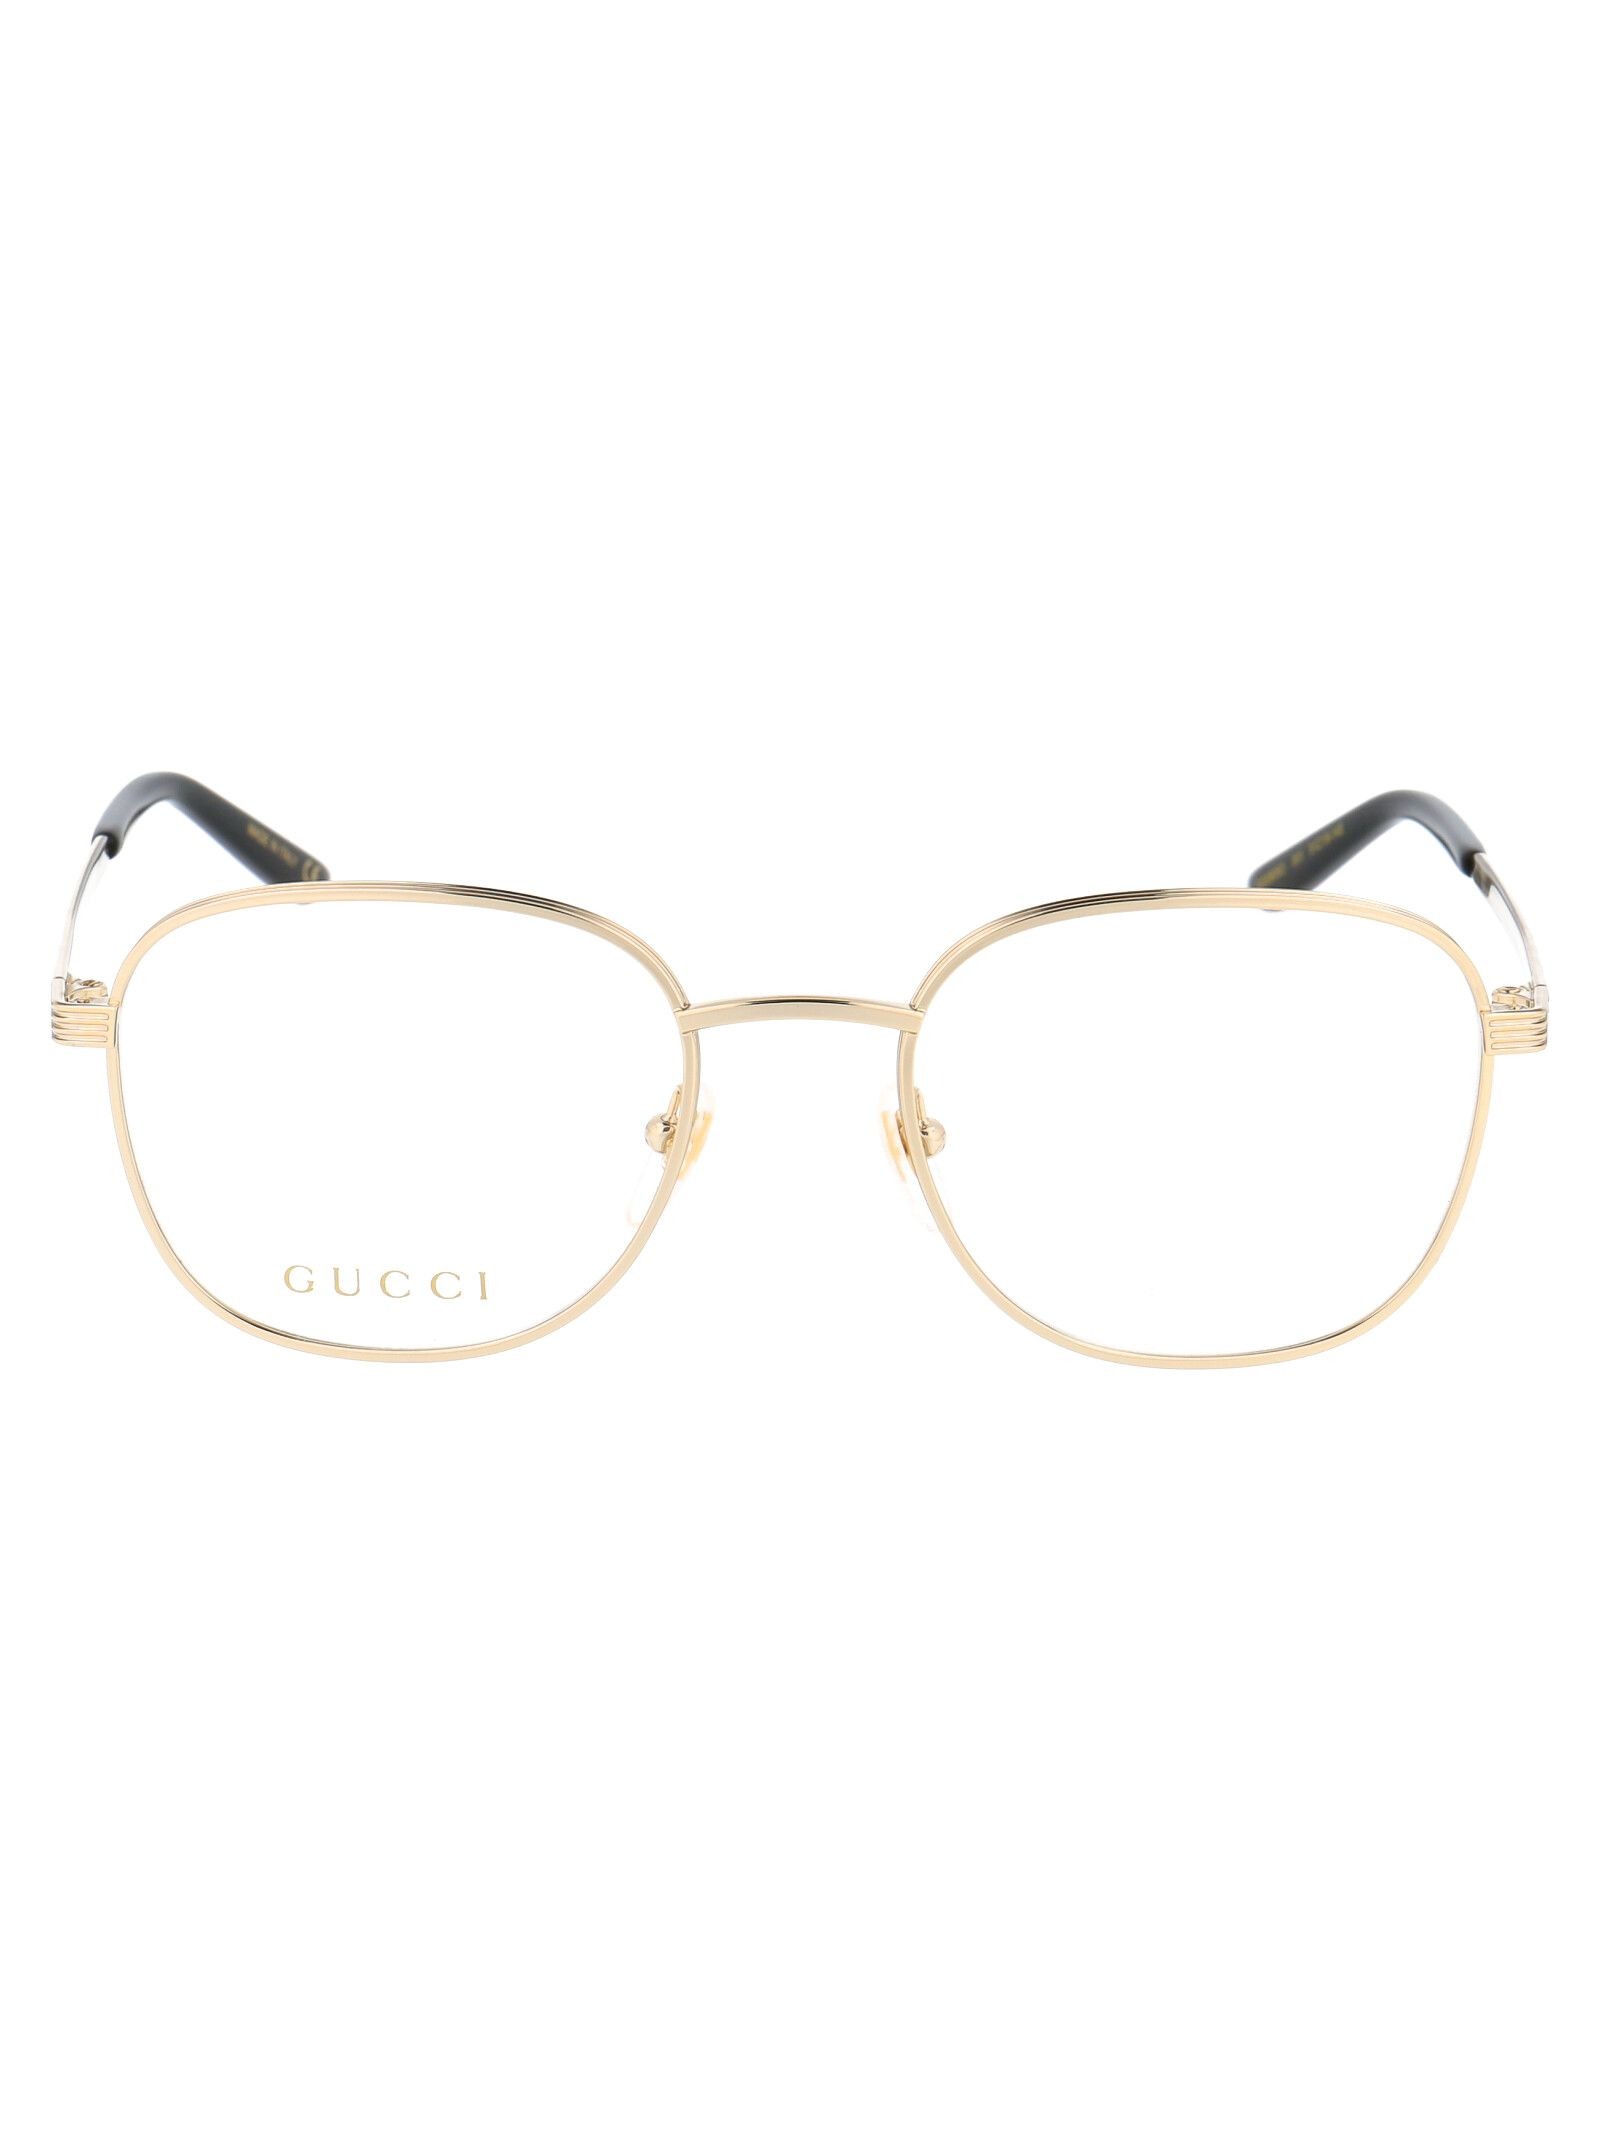 Gucci GUCCI WOMEN'S BROWN METAL GLASSES